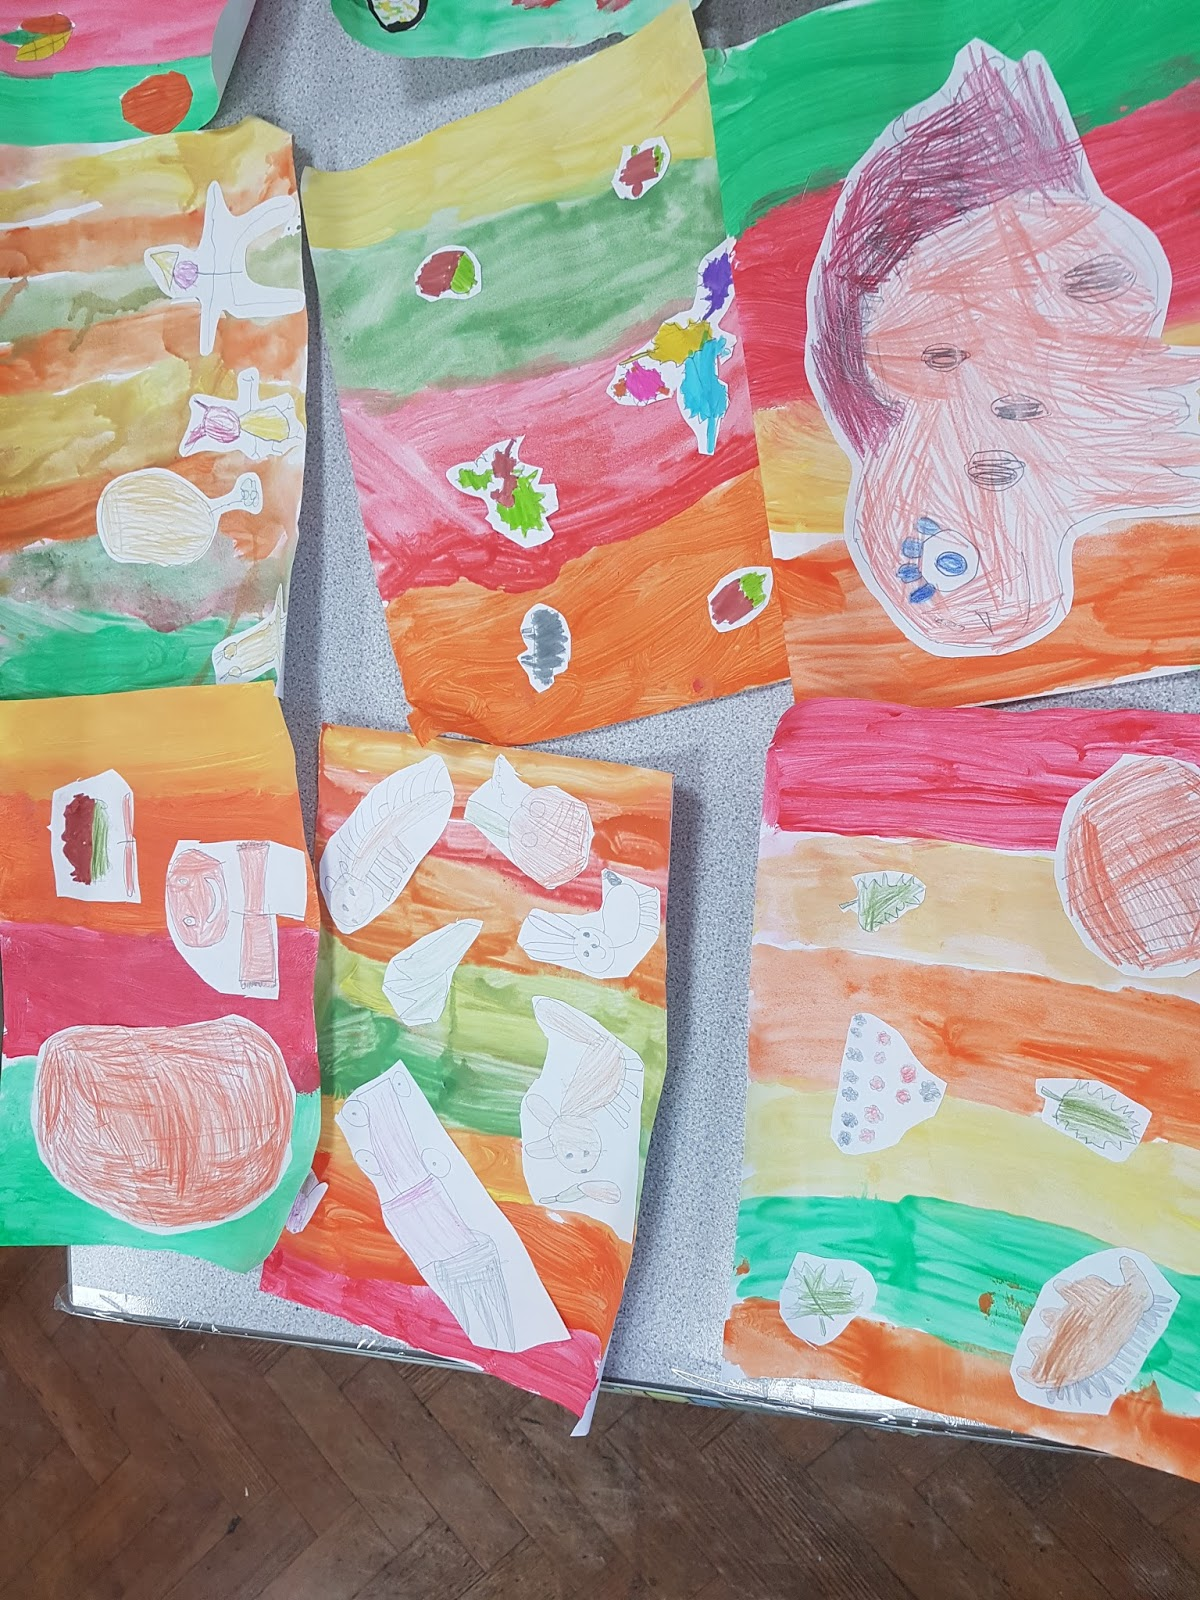 Then We Drew Our Own Autumn Pictures And Painted An Background Using A Range Of Colours To Stick On